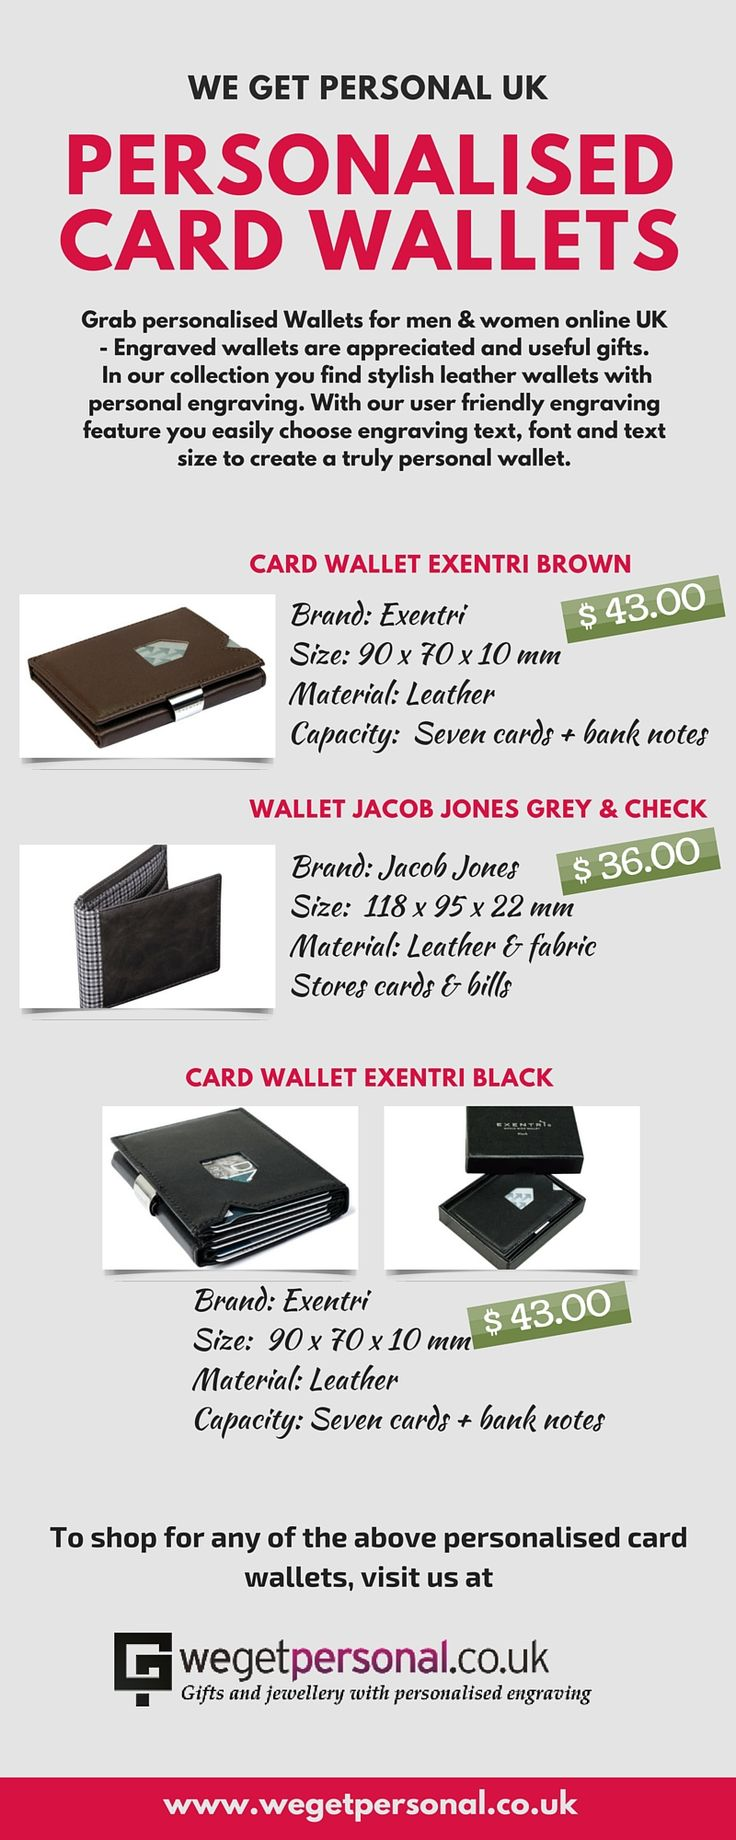 Personalised wallets are appreciated and useful gifts. These wallets are one of the most commonly used accessories in modern society. These can be engraved by the text of your own choice. Order your engraved wallet today. All engraved wallets are delivered quickly and shipping is free! #wallet #personalisedwallets #personalisedwallet #Engravedwallets